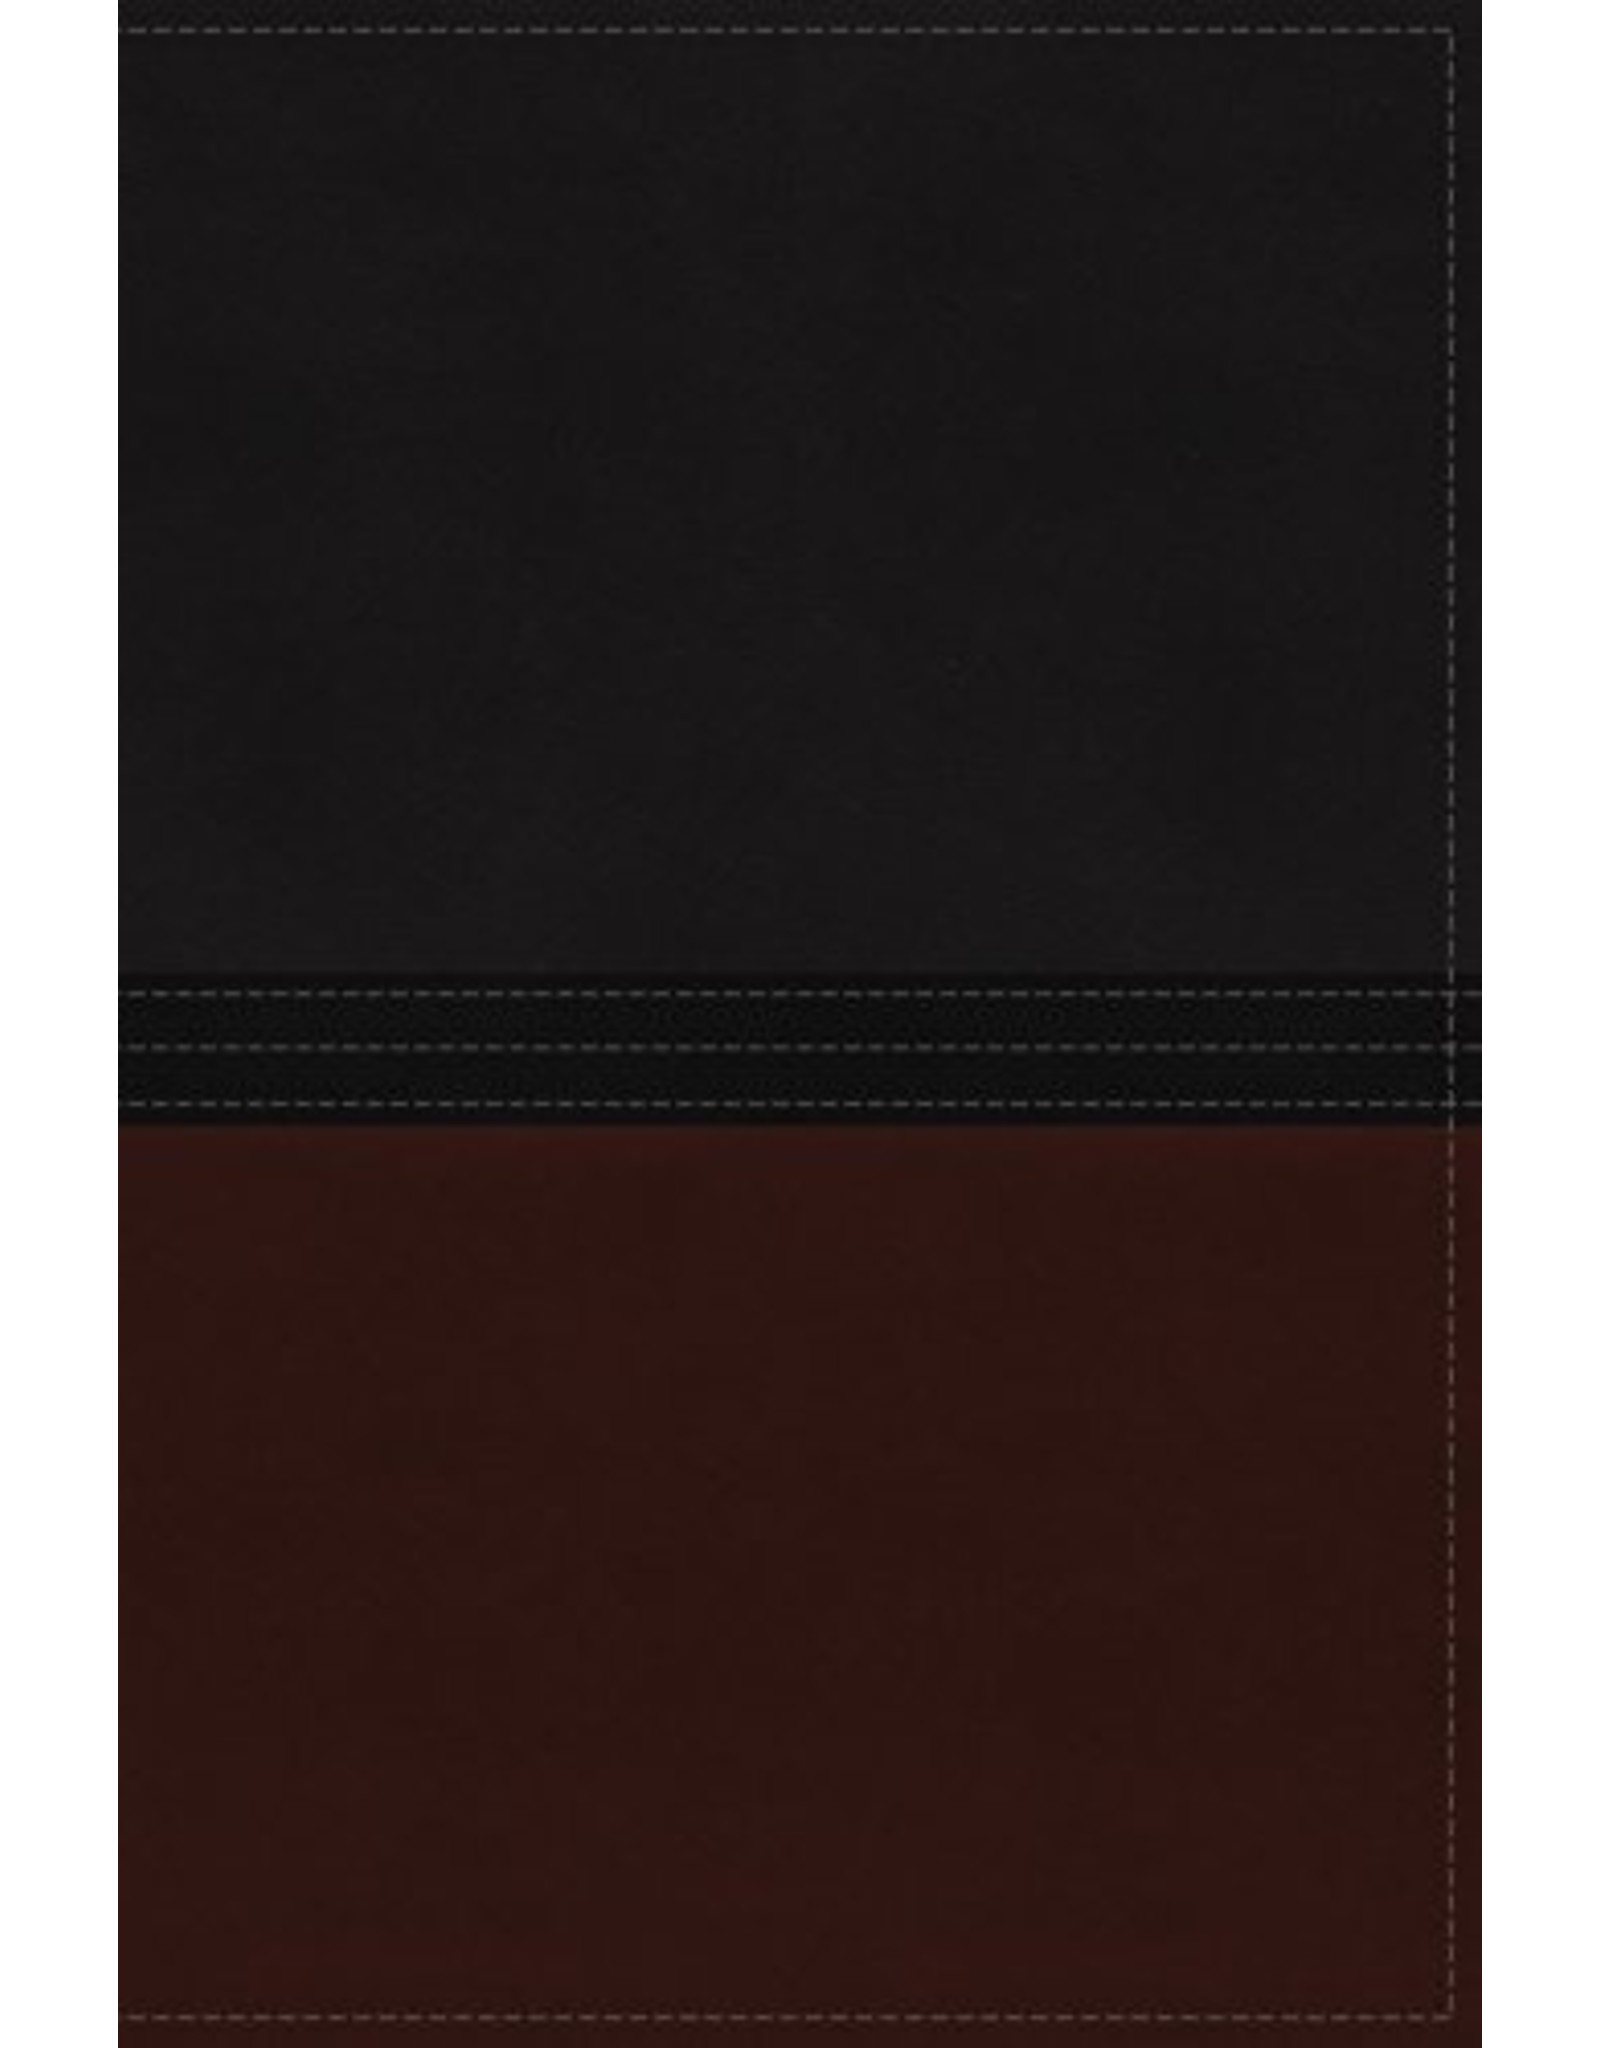 Harper Collins / Thomas Nelson / Zondervan MacArthur Study Bible NIV Leathersoft, Auburn/Black, Indexed